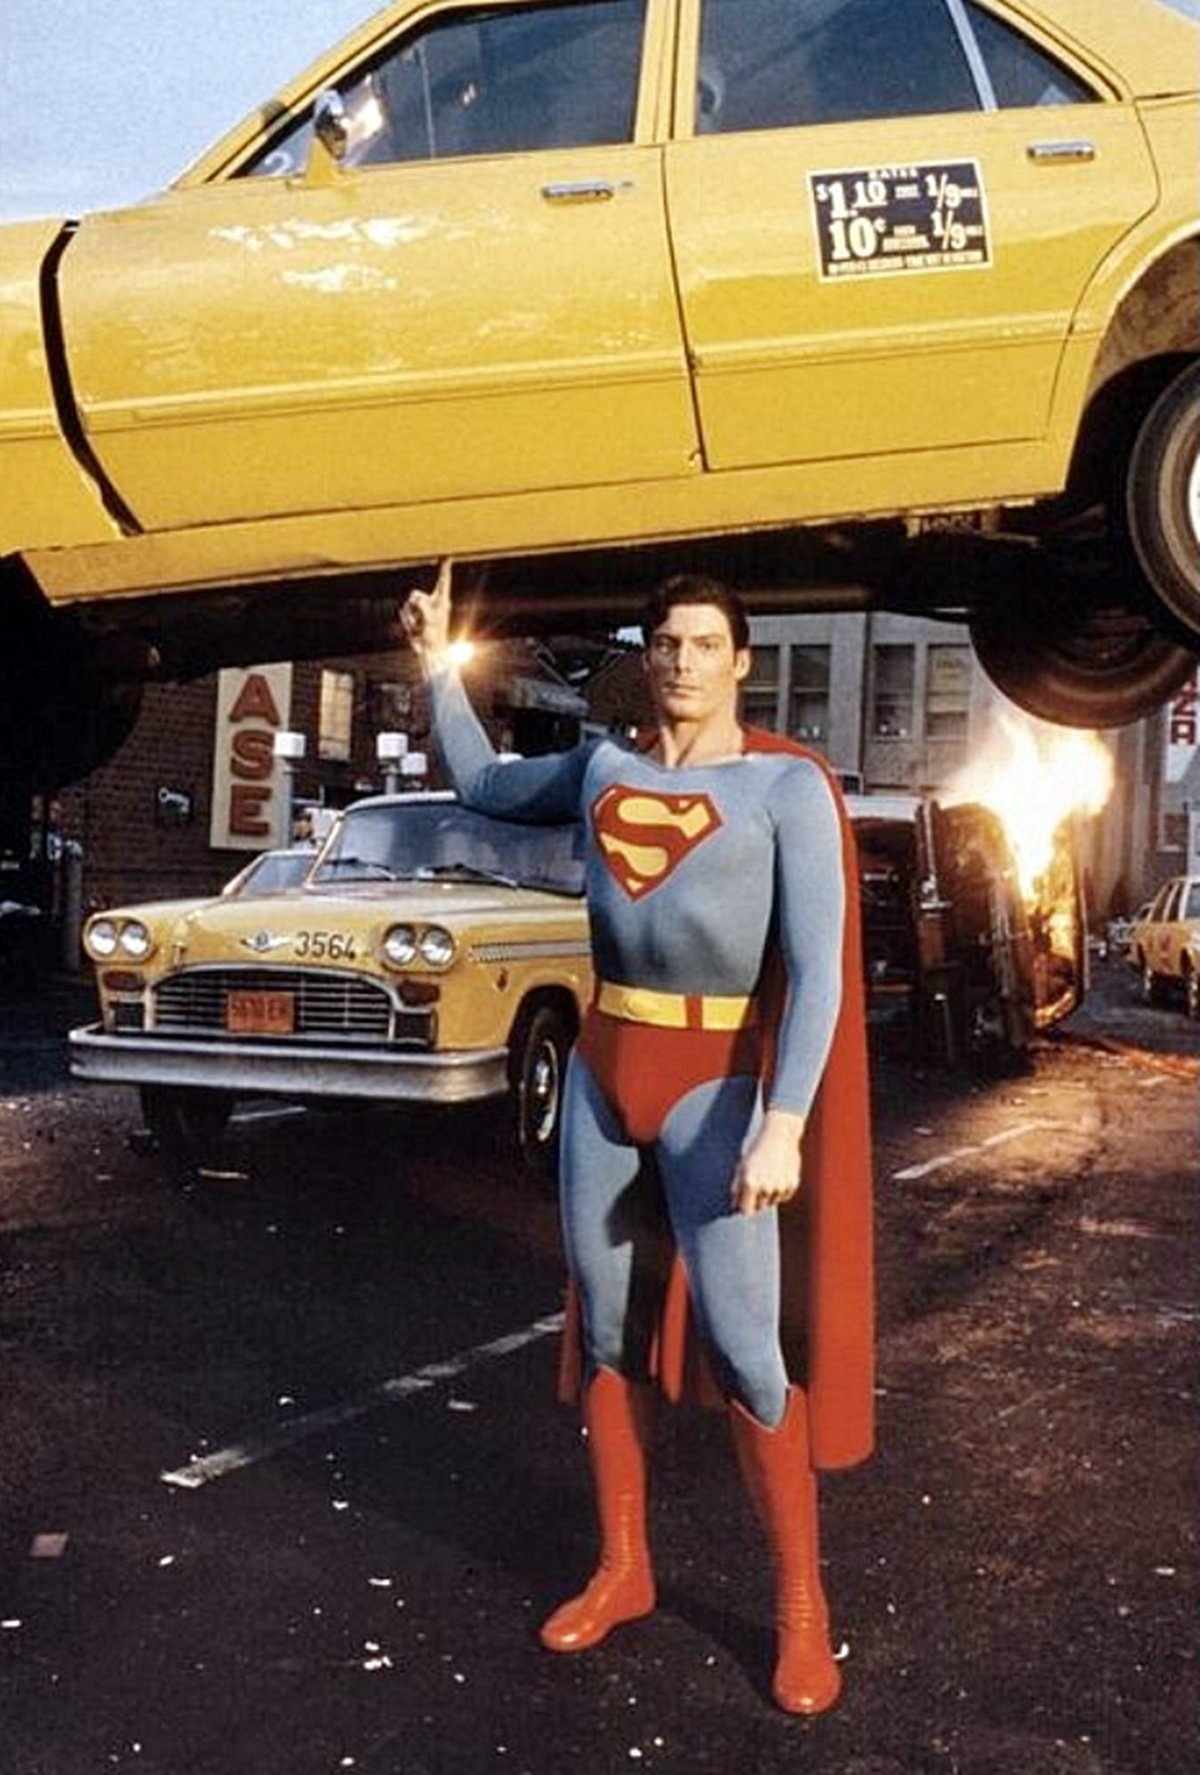 2 13 12 Things You May Have Missed In Christopher Reeve's Superman Films